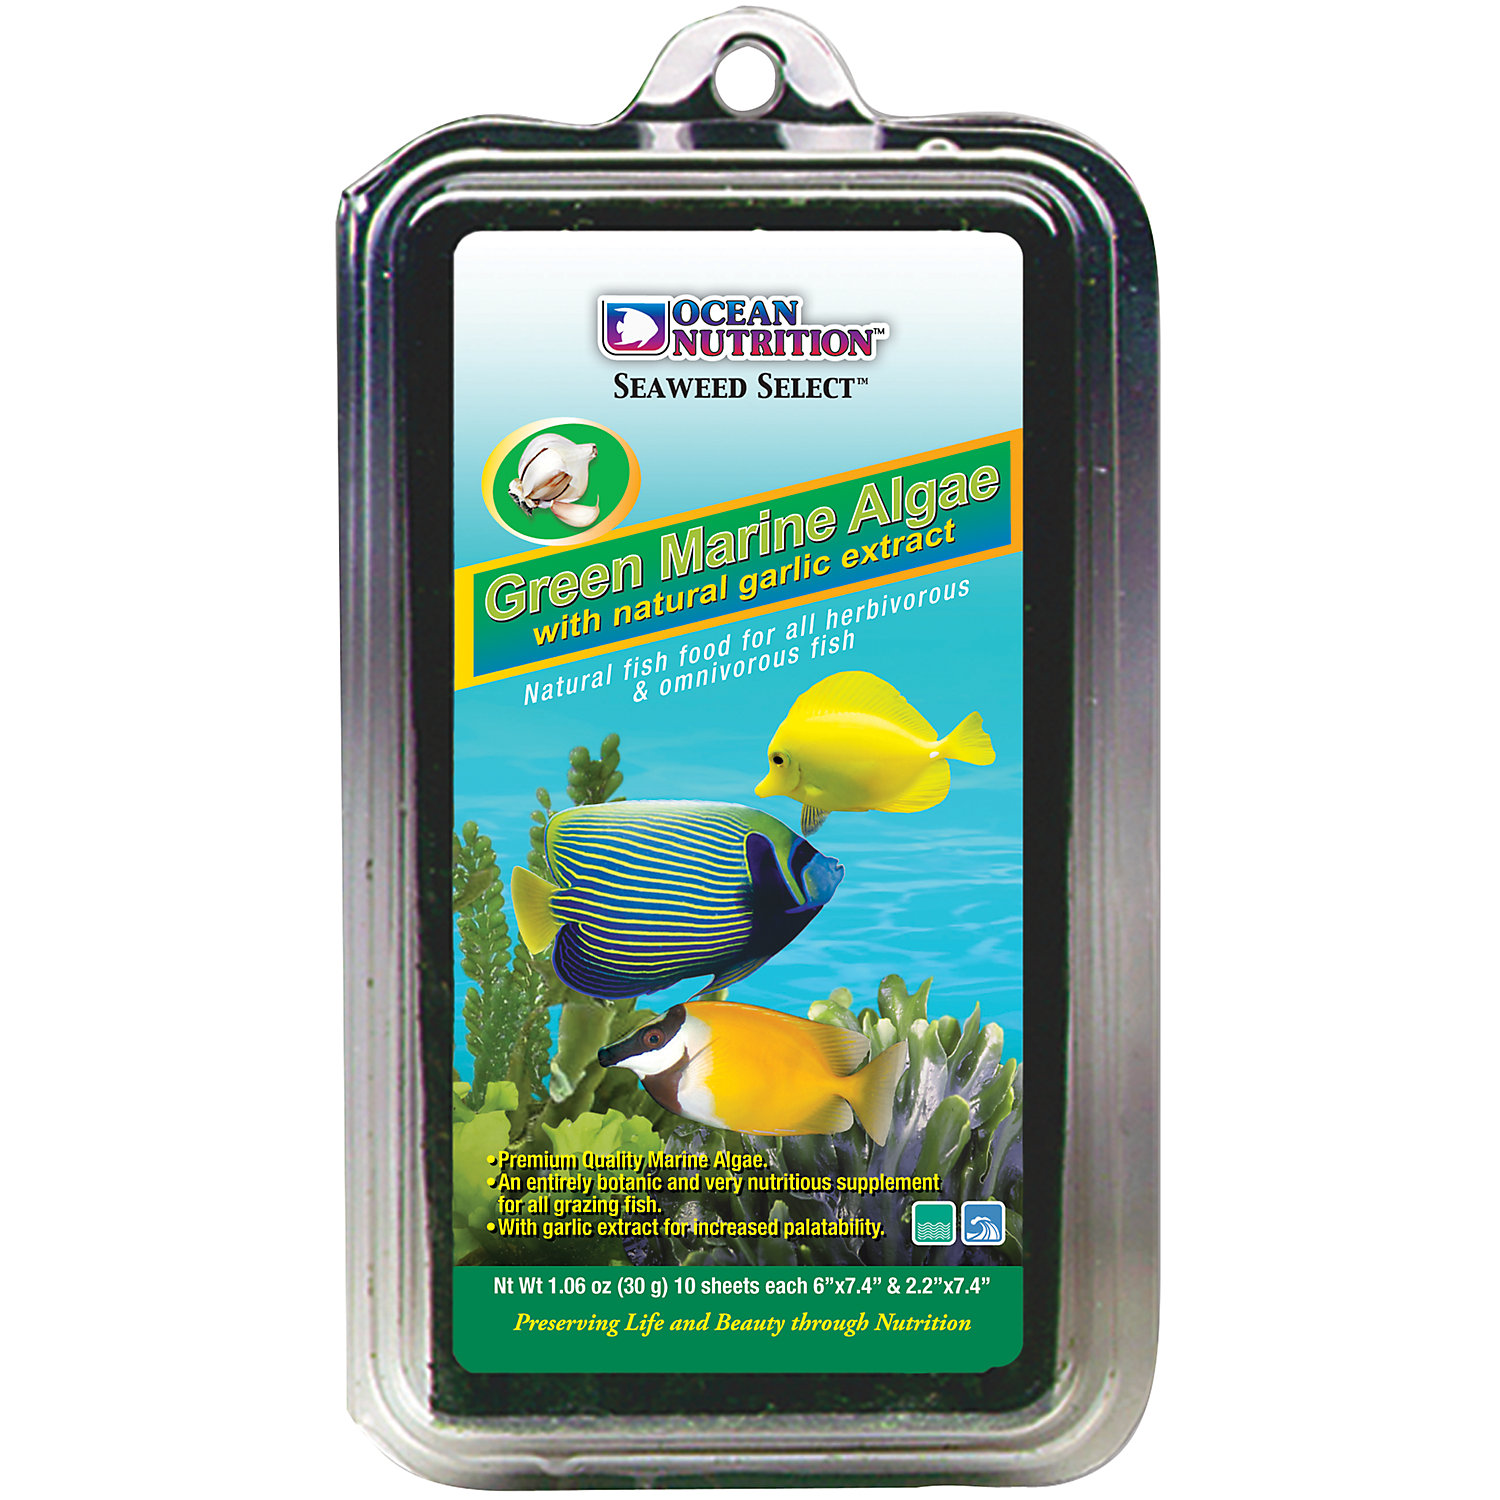 Ocean Nutrition Green Marine Algae Fish Food